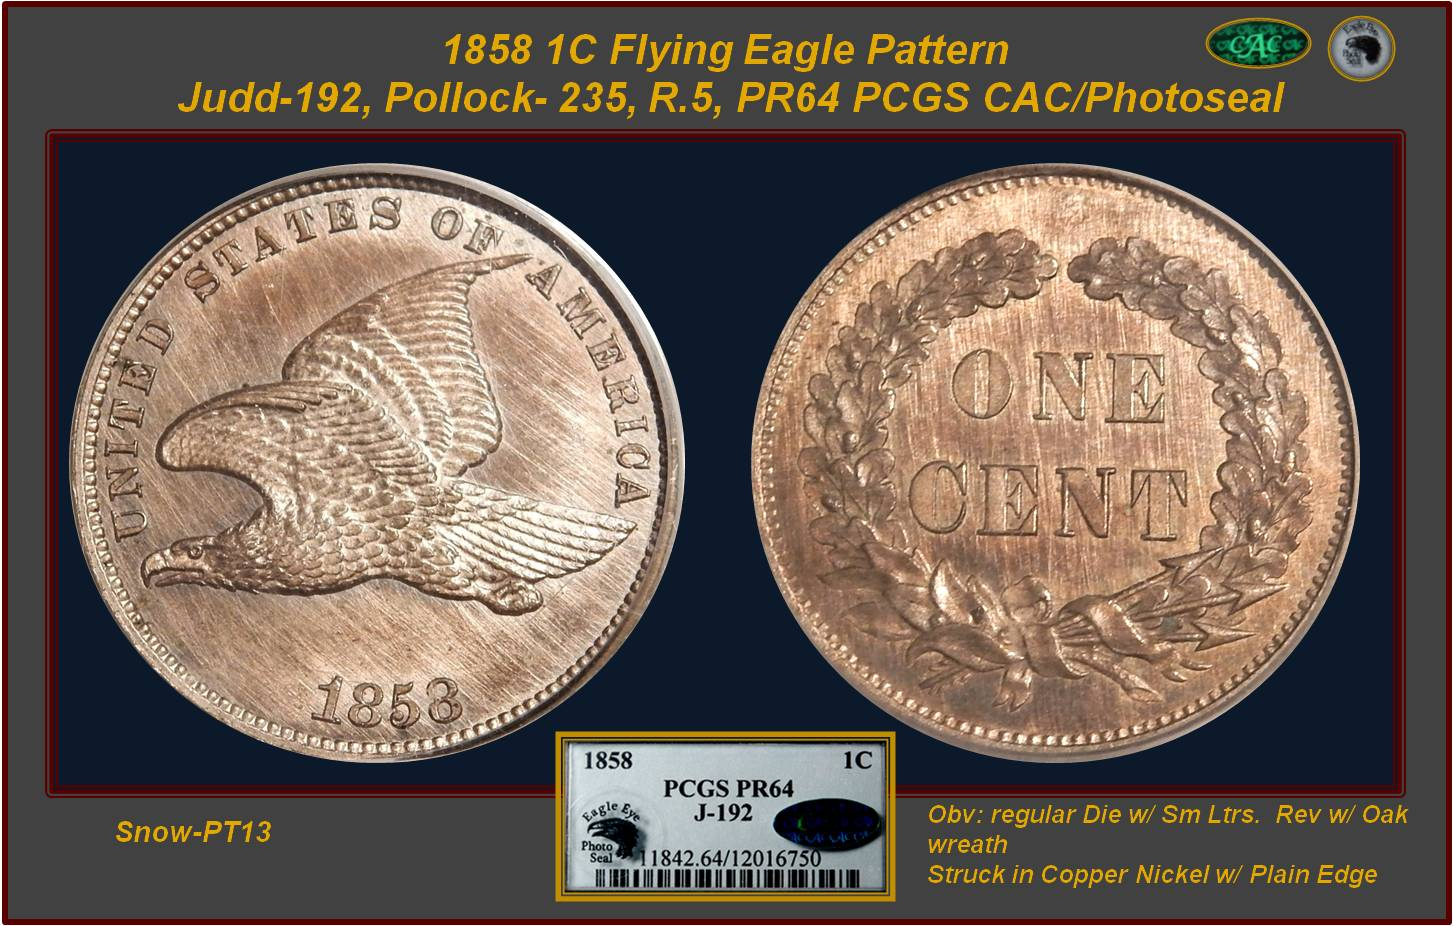 GFRC Open Set Registry - Manya 1858 Pattern  1C